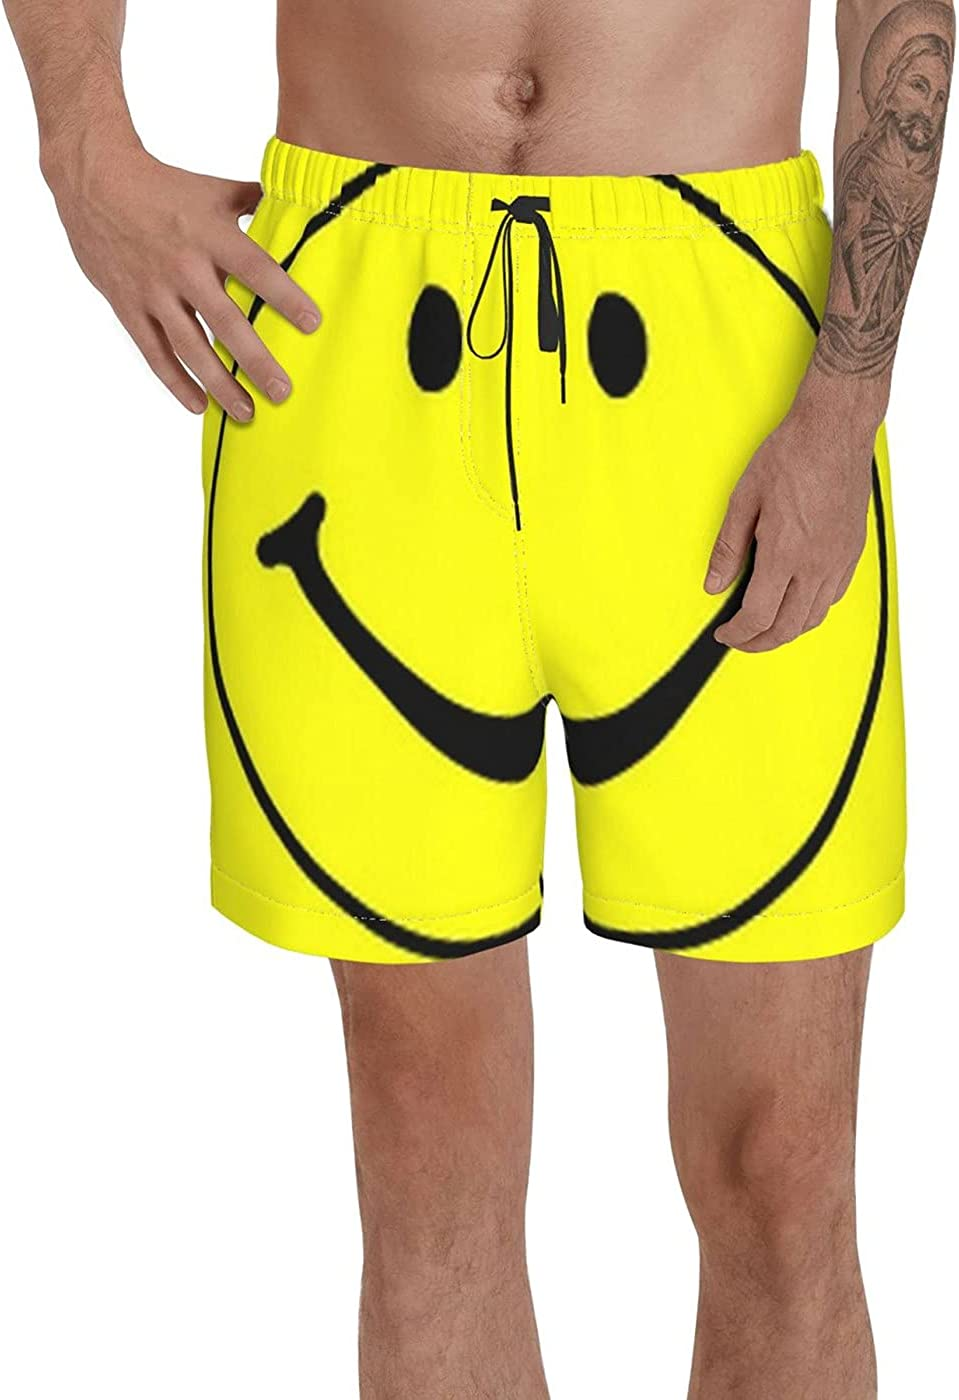 Count Yellow Smiley Face Flag Men's 3D Printed Funny Summer Quick Dry Swim Short Board Shorts with